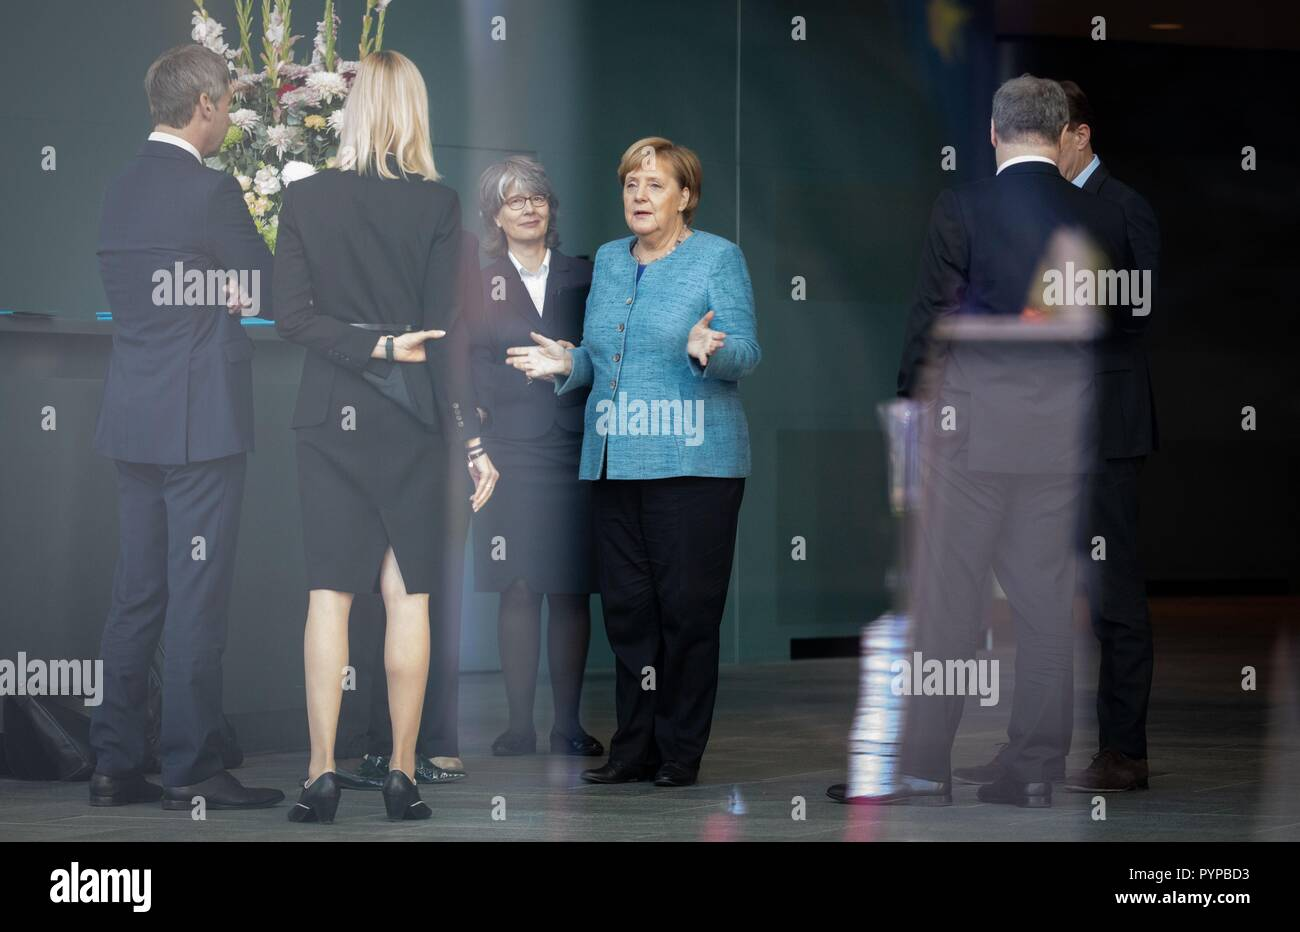 Berlin, Germany. 30th Oct, 2018. Chancellor Angela Merkel (CDU) expects the Prime Minister of the Democratic Federal Republic of Ethiopia before the Federal Chancellery alongside her advisers at the beginning of the Africa Summit. This is where eleven heads of state and government come to Berlin for the summit meeting. It is about an initiative for more private investment in Africa, which Merkel launched last year as President of the Group of Leading Economic Powers (G20). Credit: Bernd von Jutrczenka/dpa/Alamy Live News - Stock Image